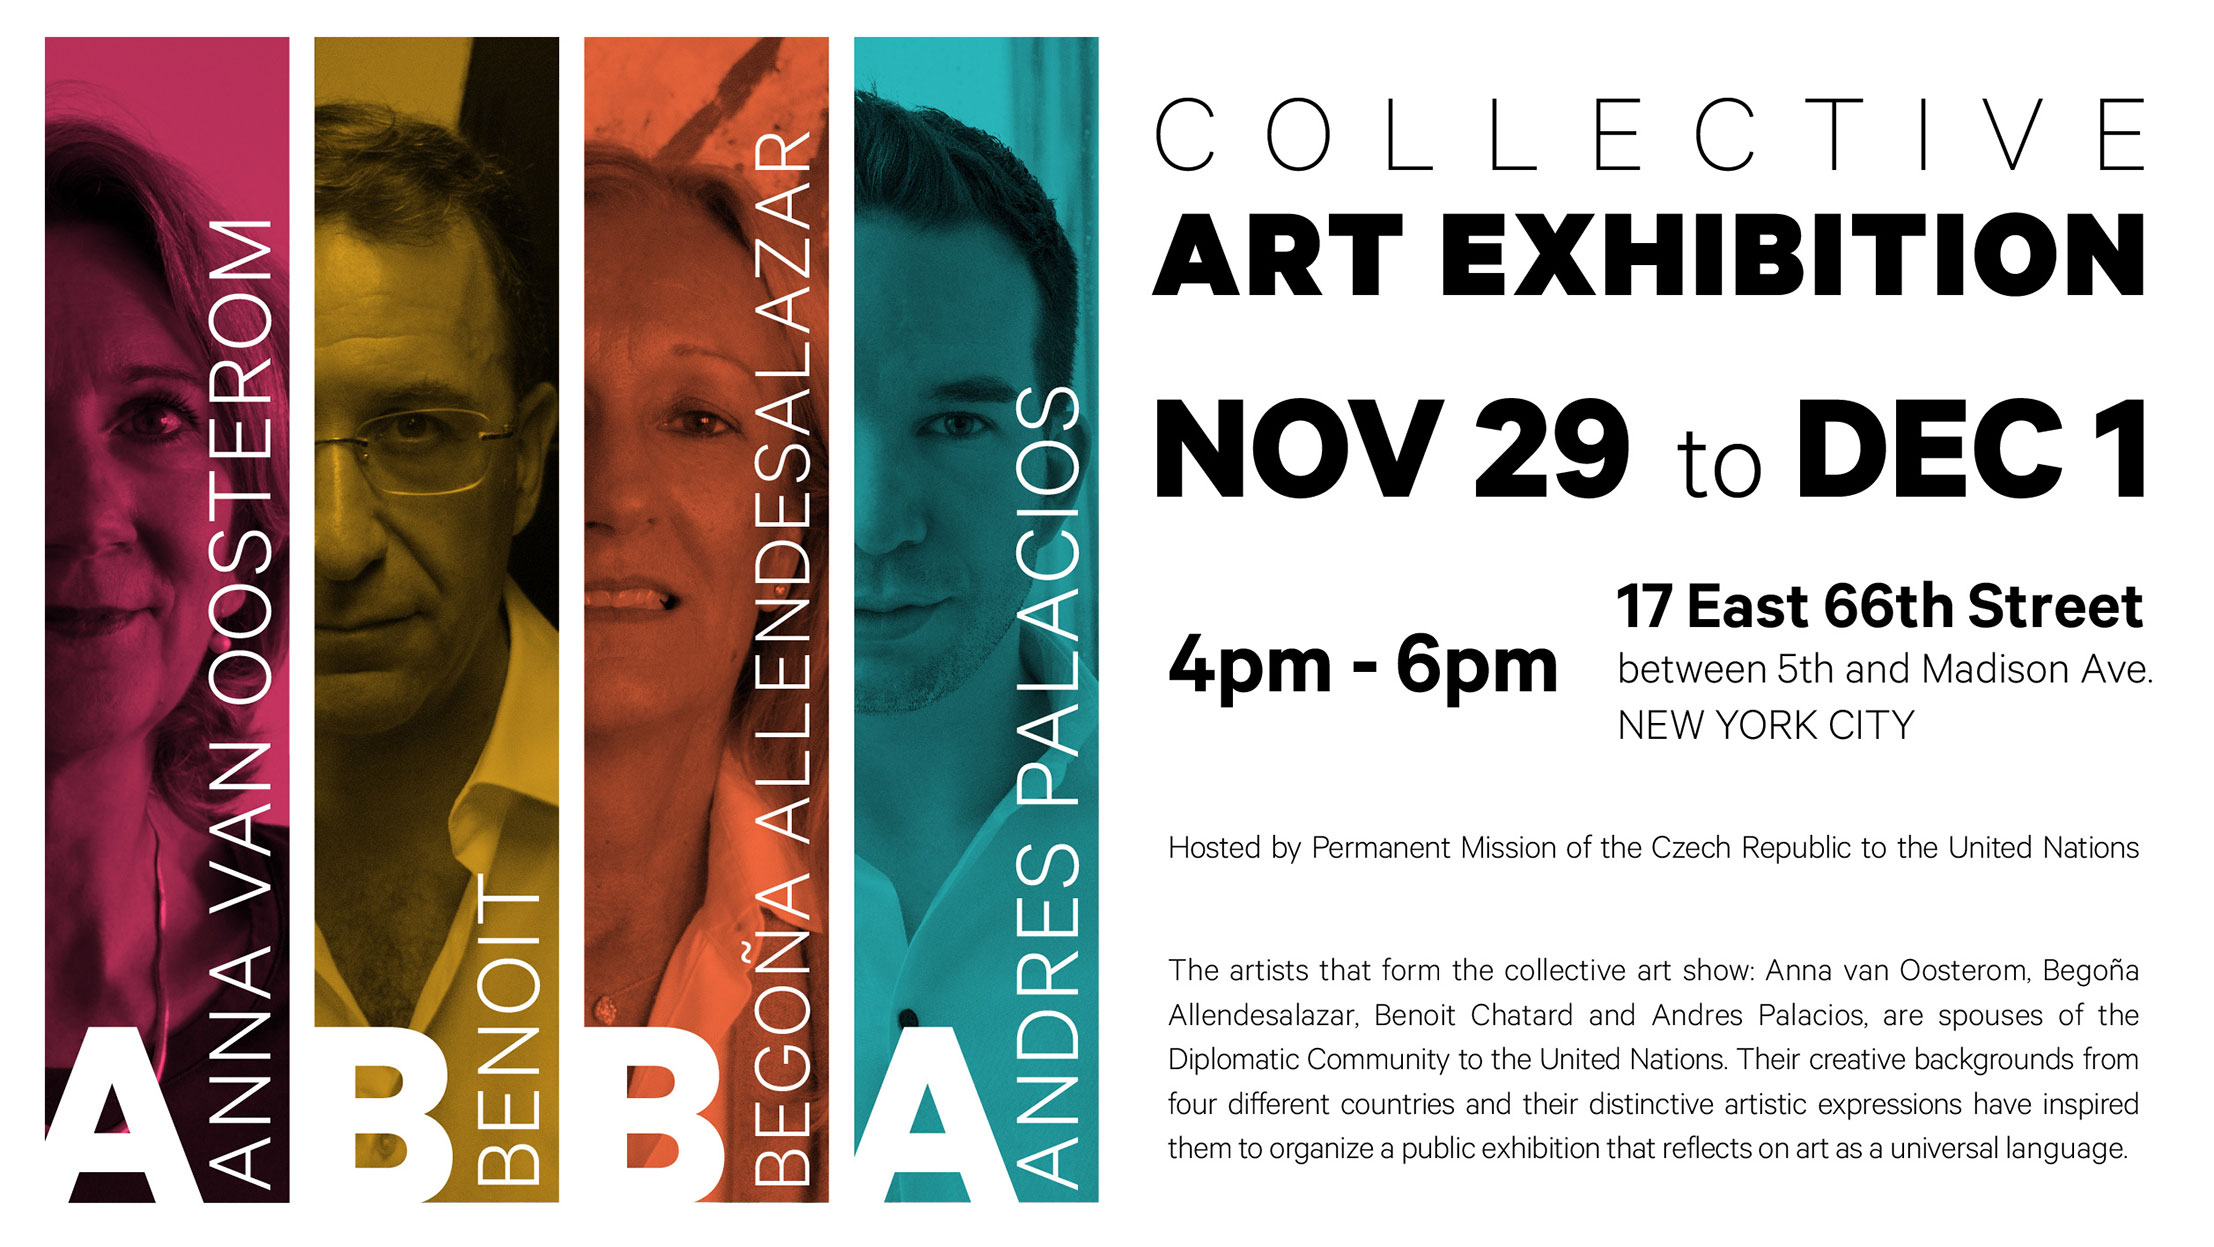 Andres Palacios - Collective Art Exhibit